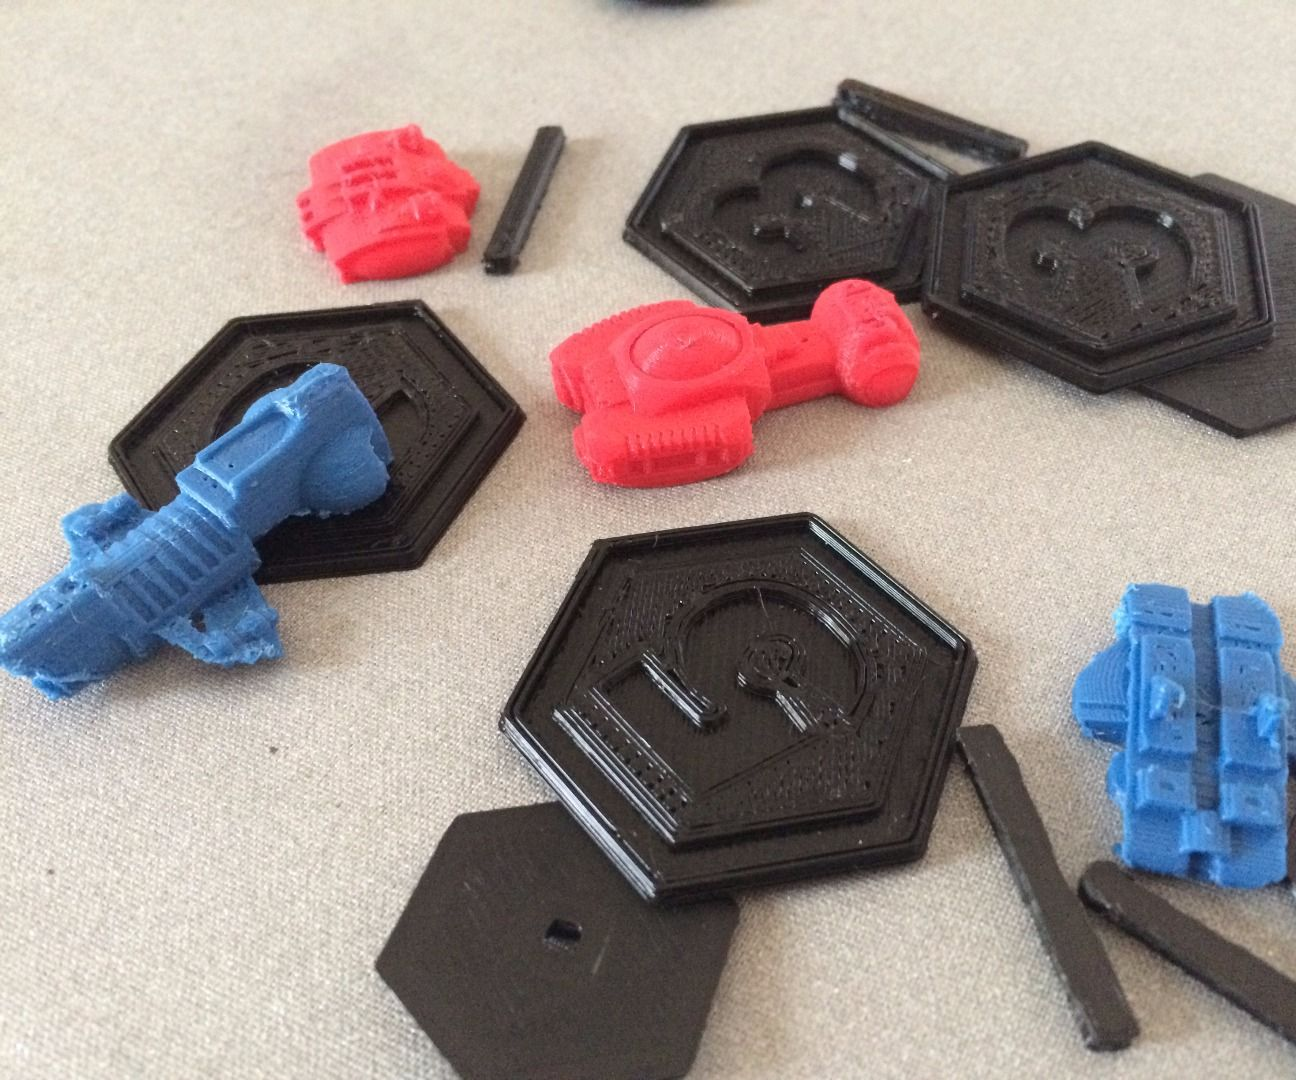 3D Print A Game: The Beginner's Guide